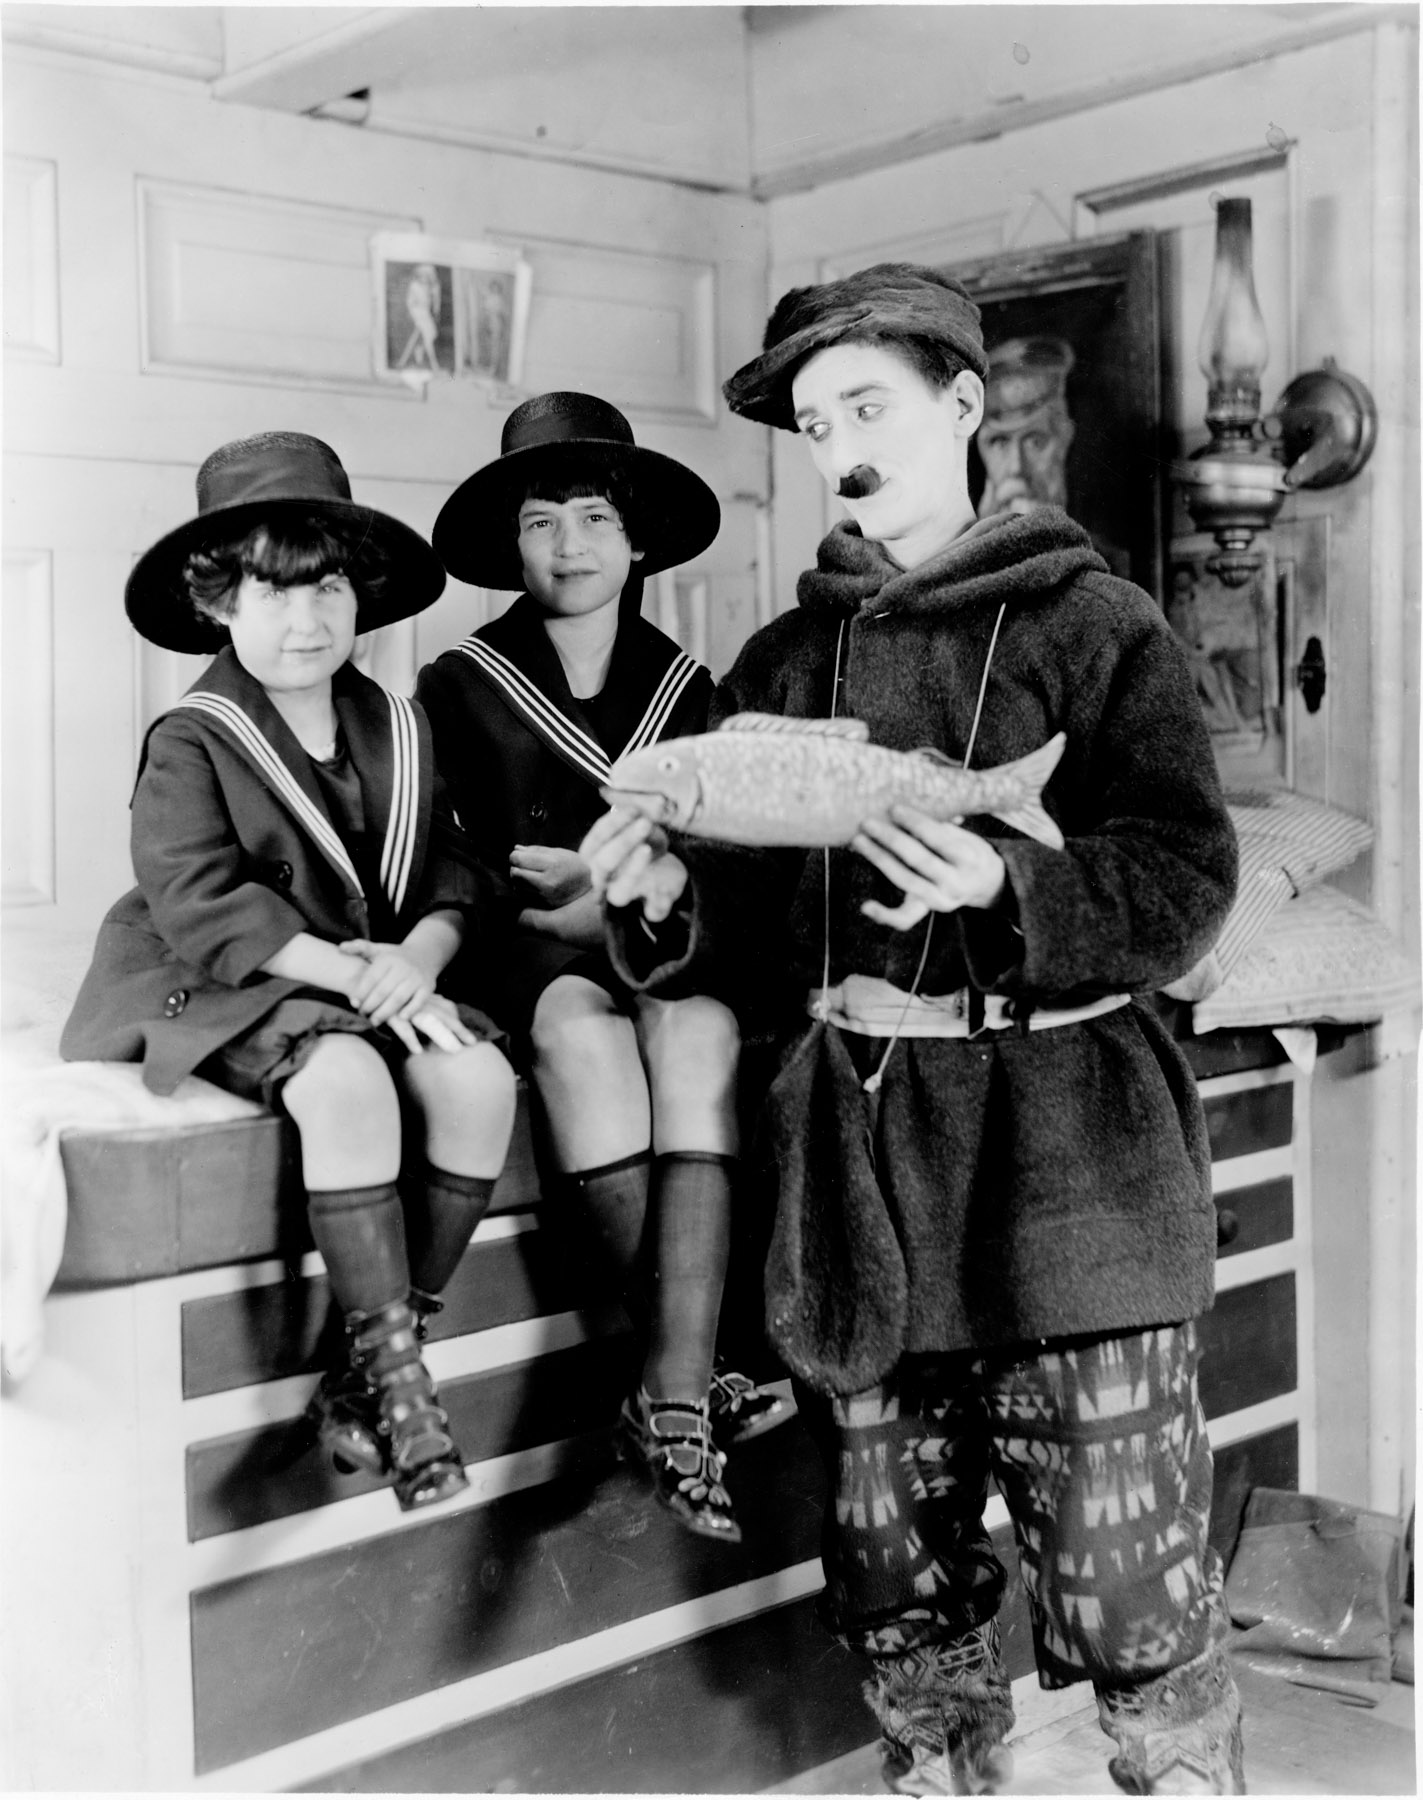 Ruth and Bernice with Actor Clyde Cook, Hollywood (1921)